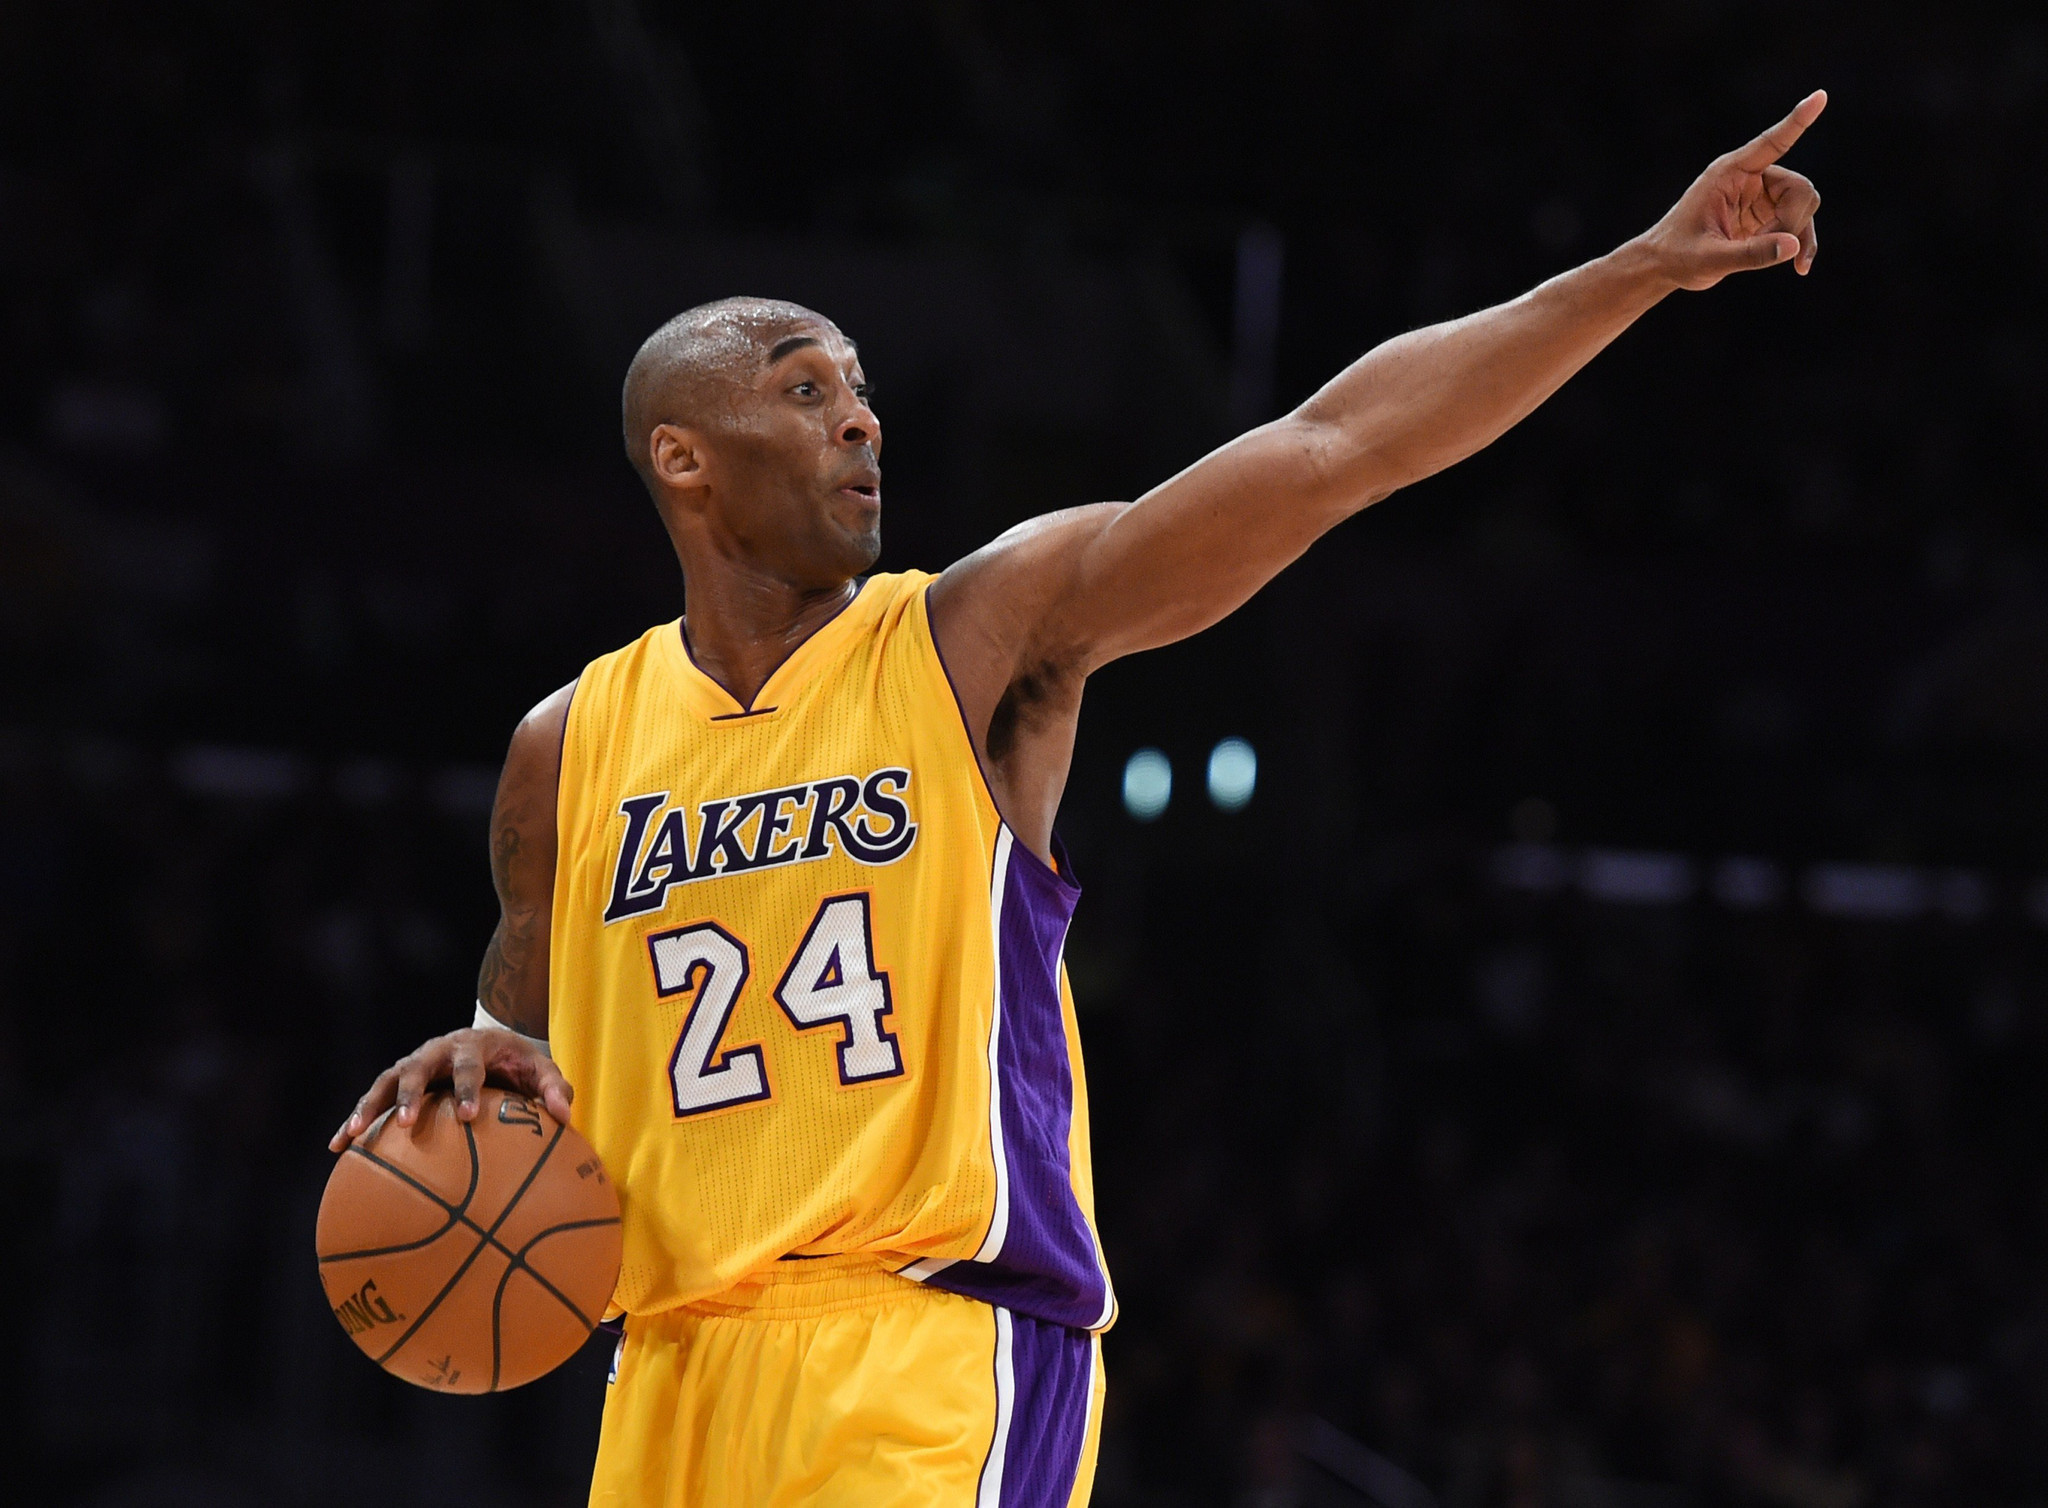 Lakers knew risks; Kobe Bryant's final season a career ...